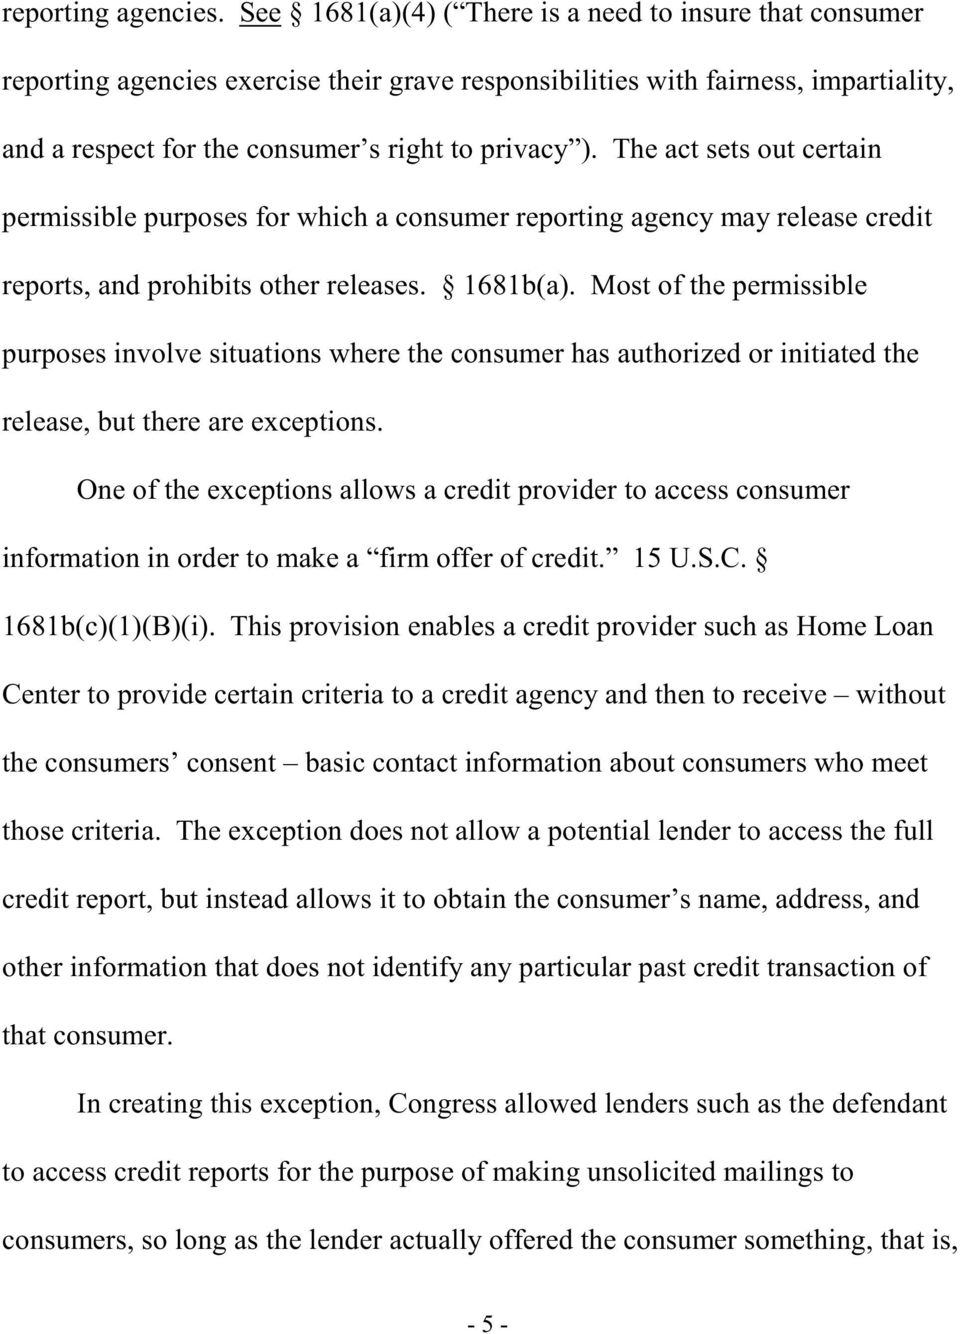 The act sets out certain permissible purposes for which a consumer reporting agency may release credit reports, and prohibits other releases. 1681b(a).